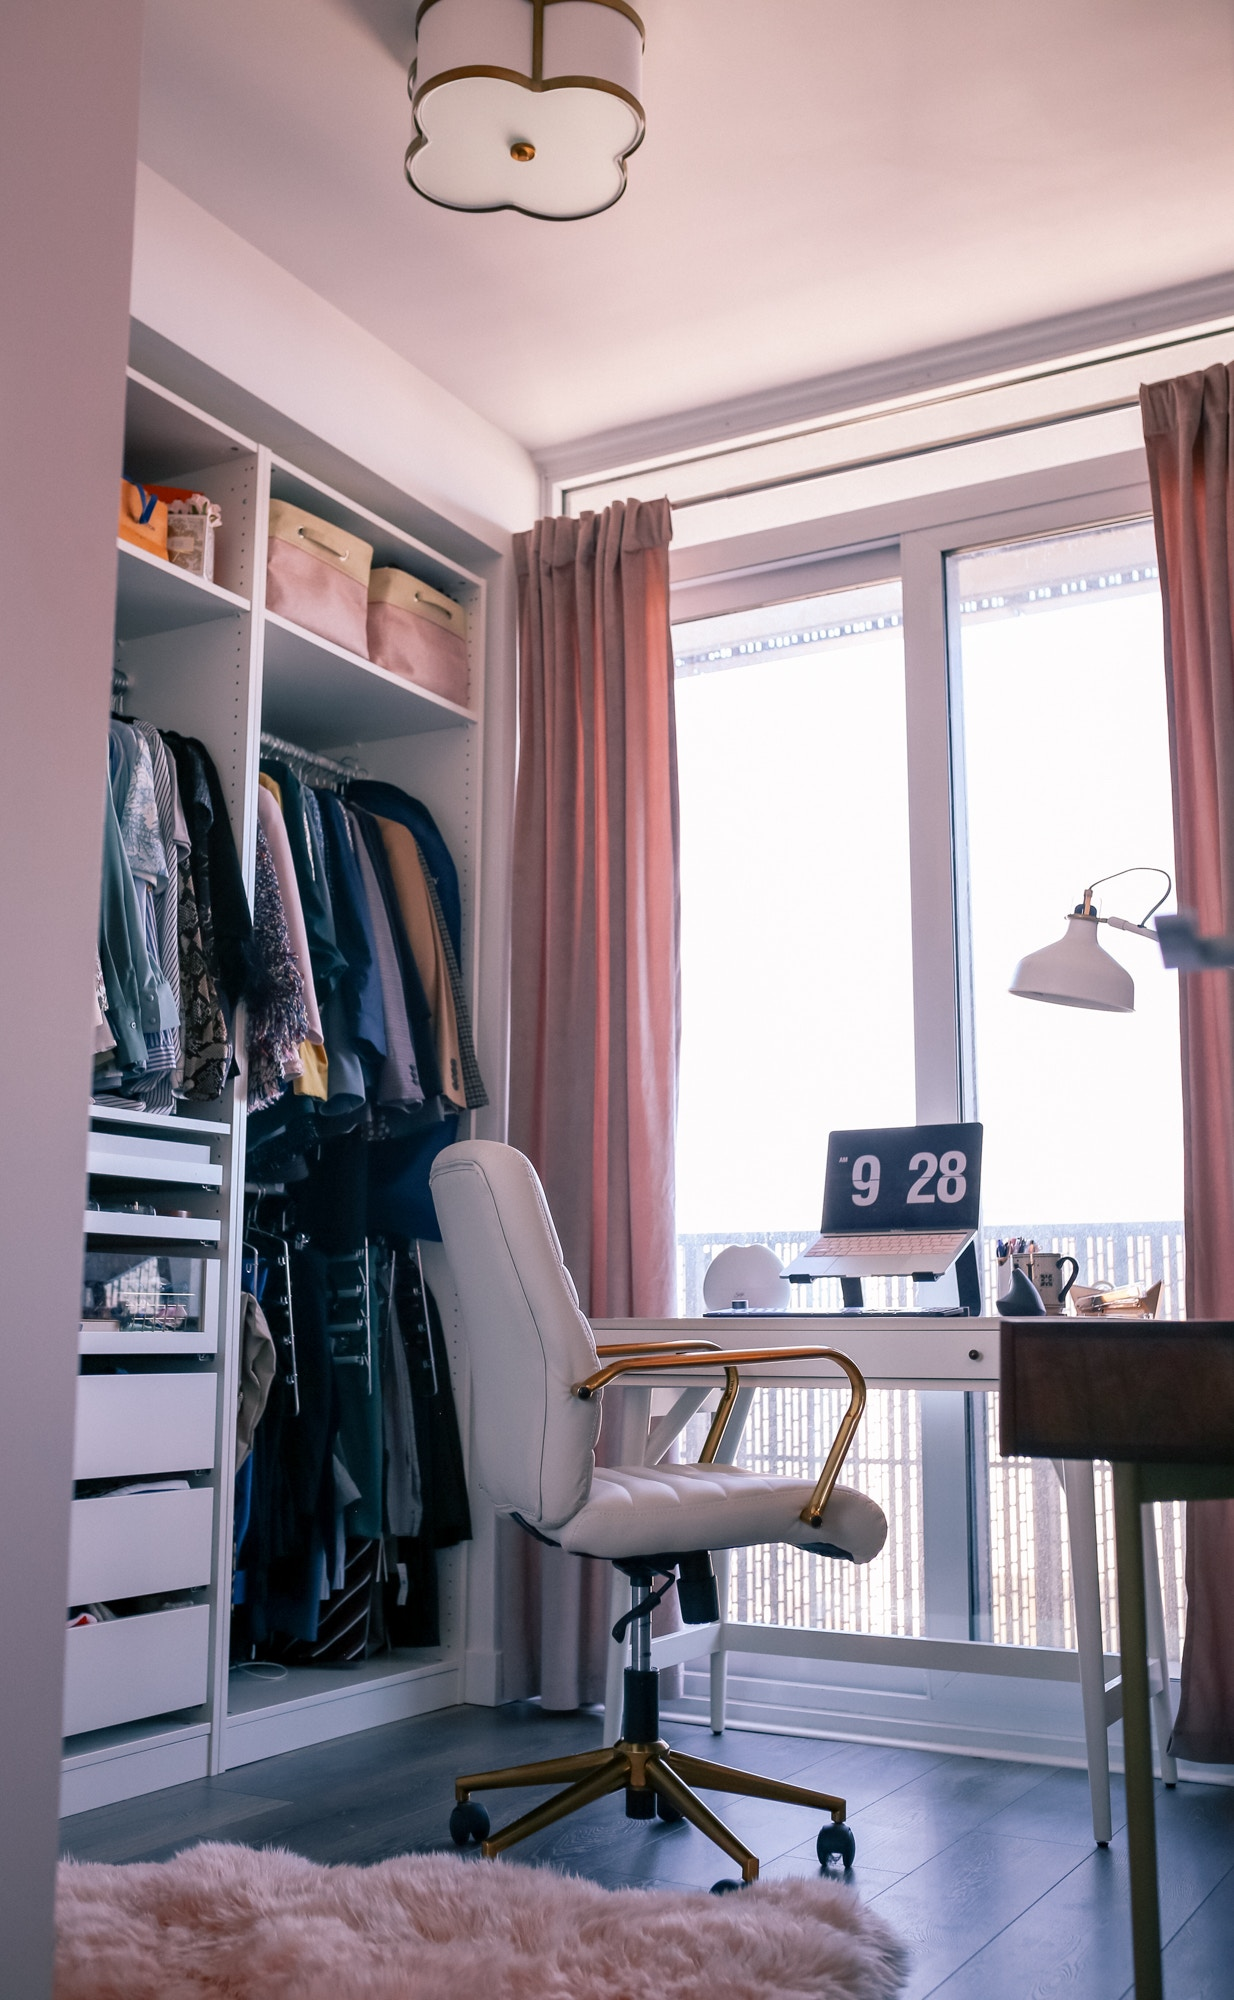 How to stay motivated during self-isolation: creating the perfect home office environment is key!